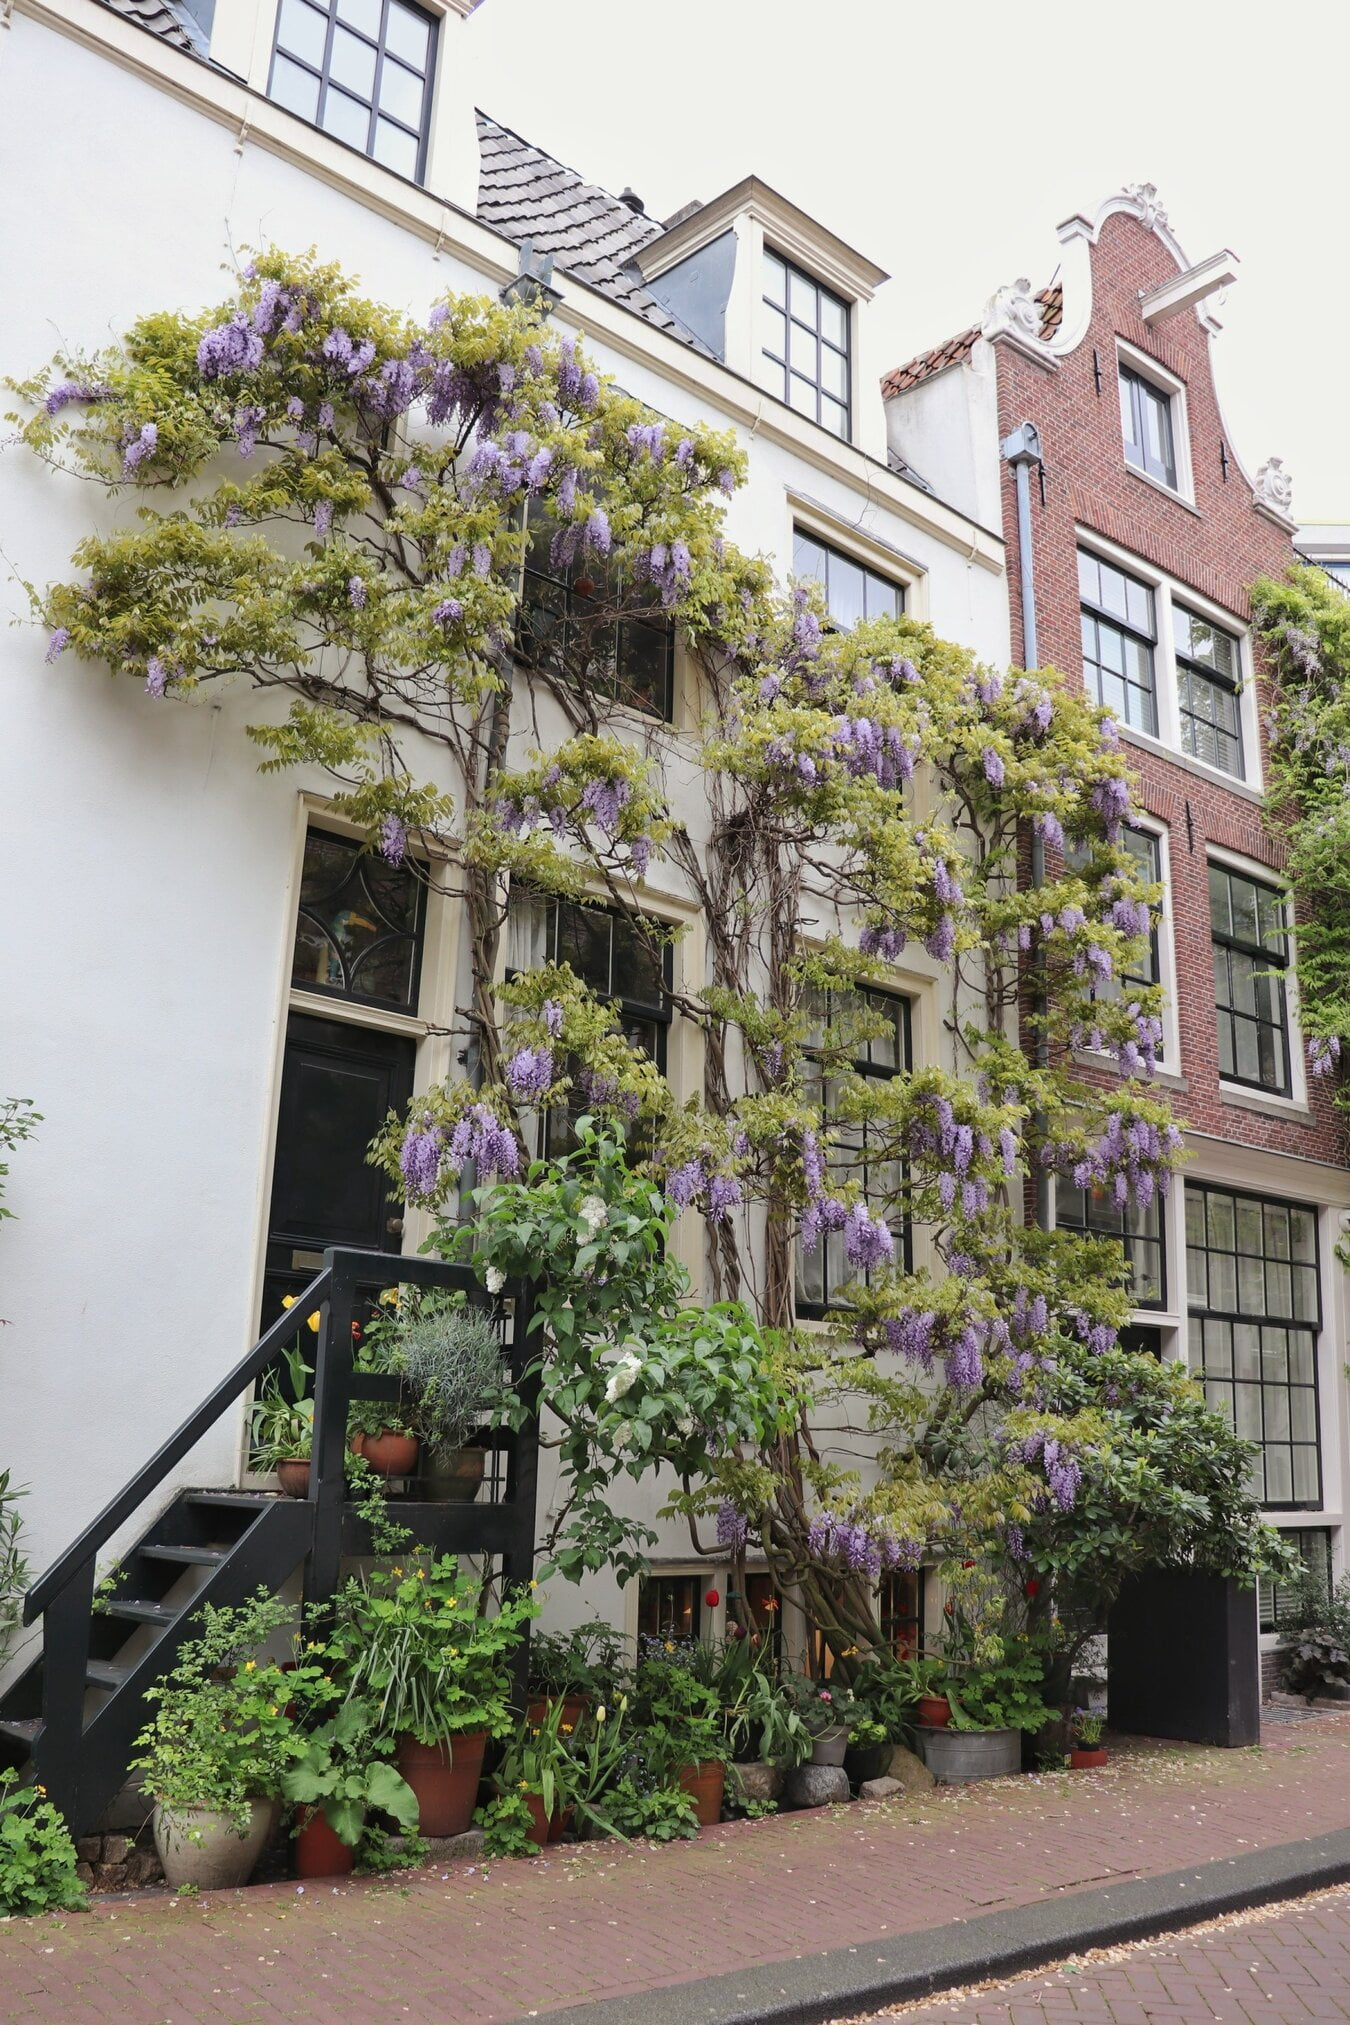 Image description. wisteria growing on the wall of a house